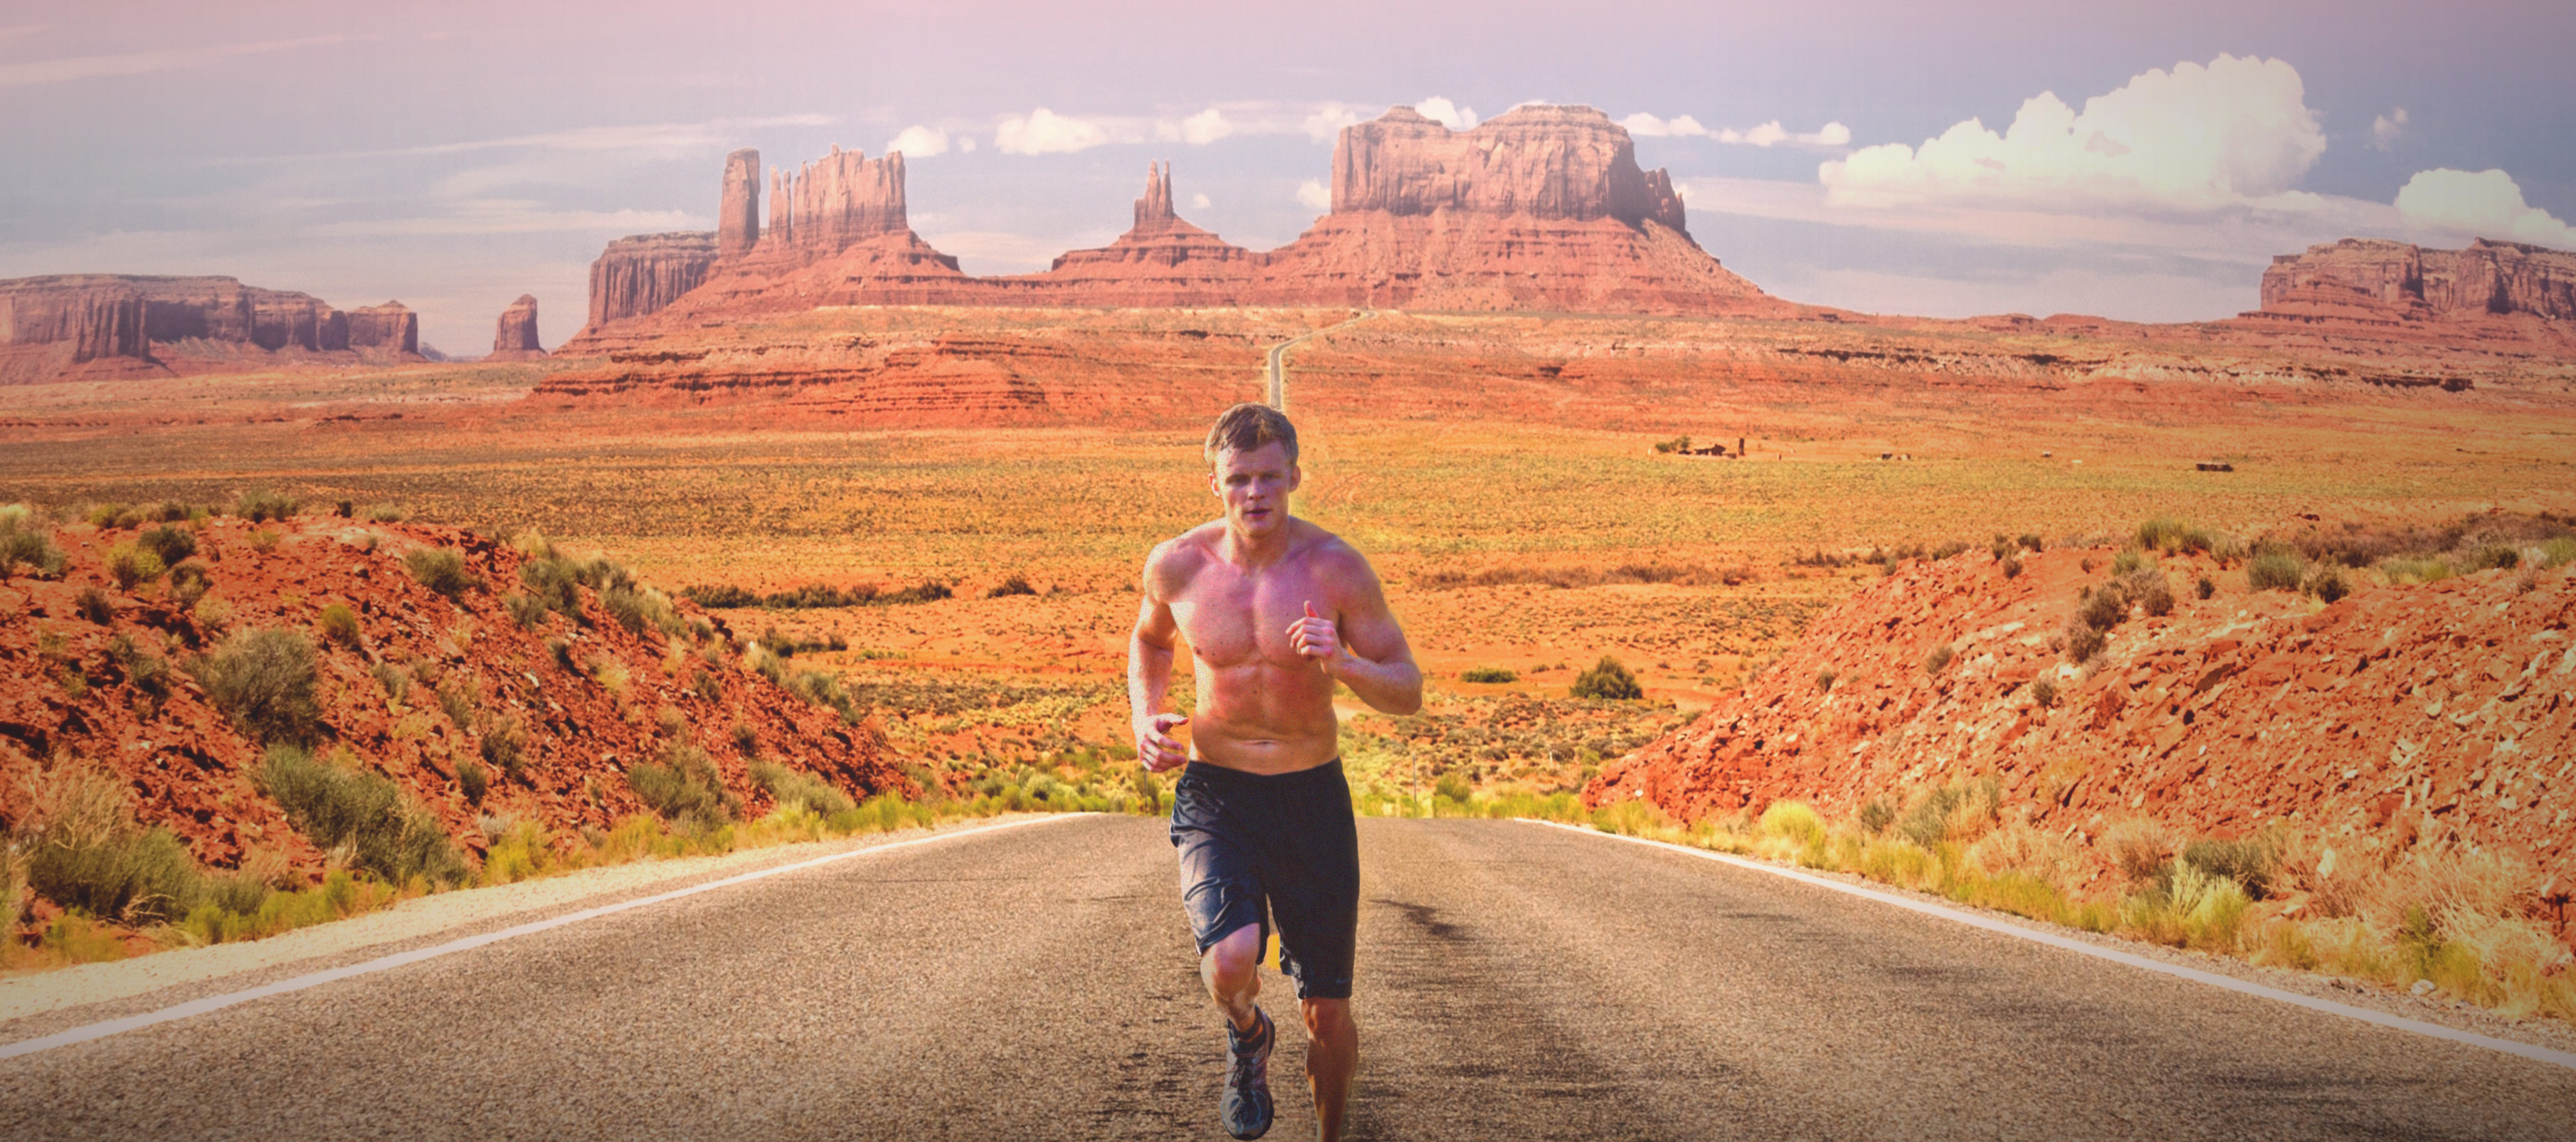 Runner on Monument Valley, People, Sky, Shoes, Runner, HQ Photo